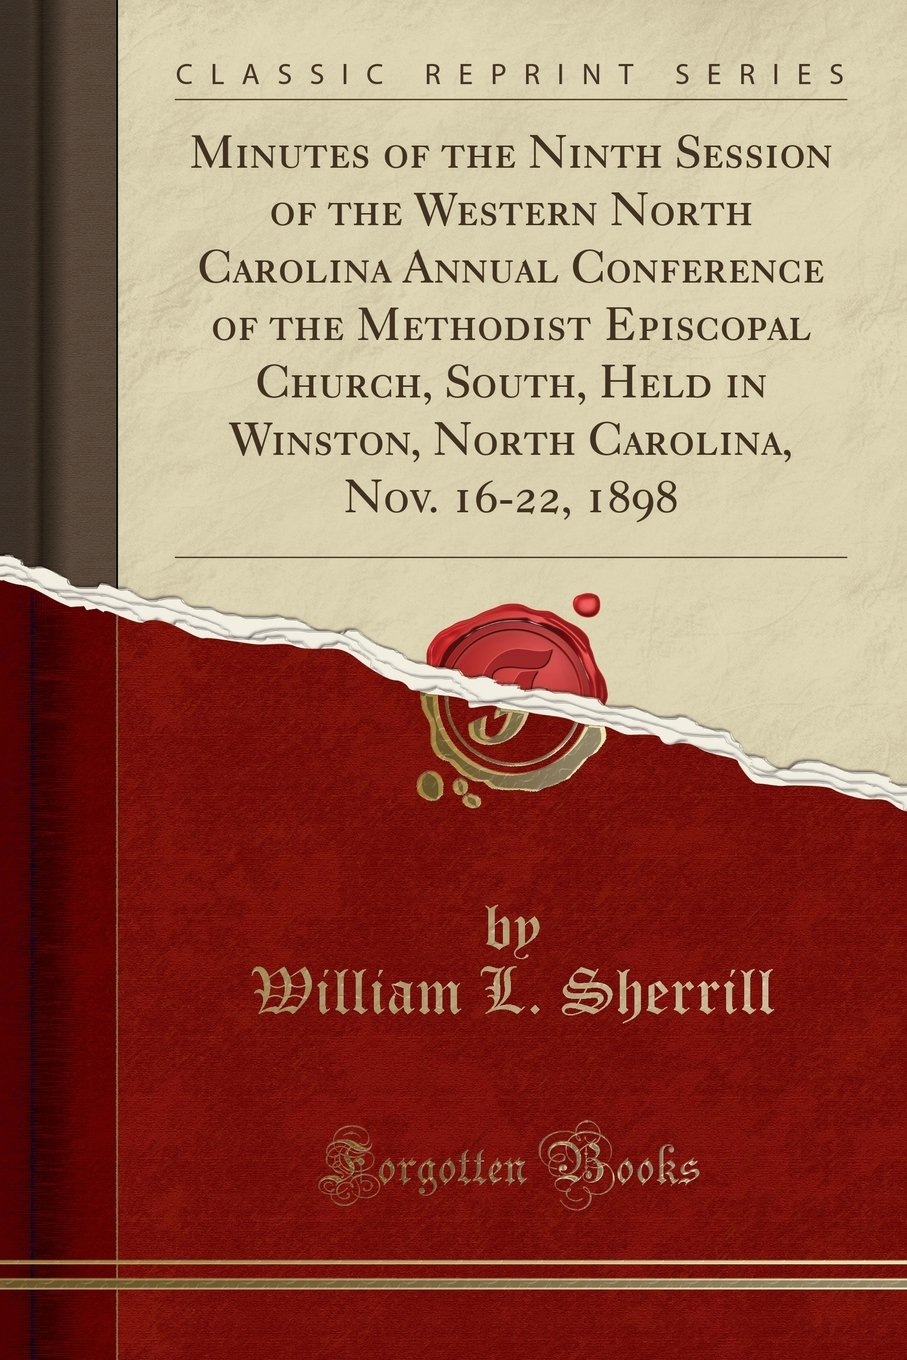 Read Online Minutes of the Ninth Session of the Western North Carolina Annual Conference of the Methodist Episcopal Church, South, Held in Winston, North Carolina, Nov. 16-22, 1898 (Classic Reprint) PDF